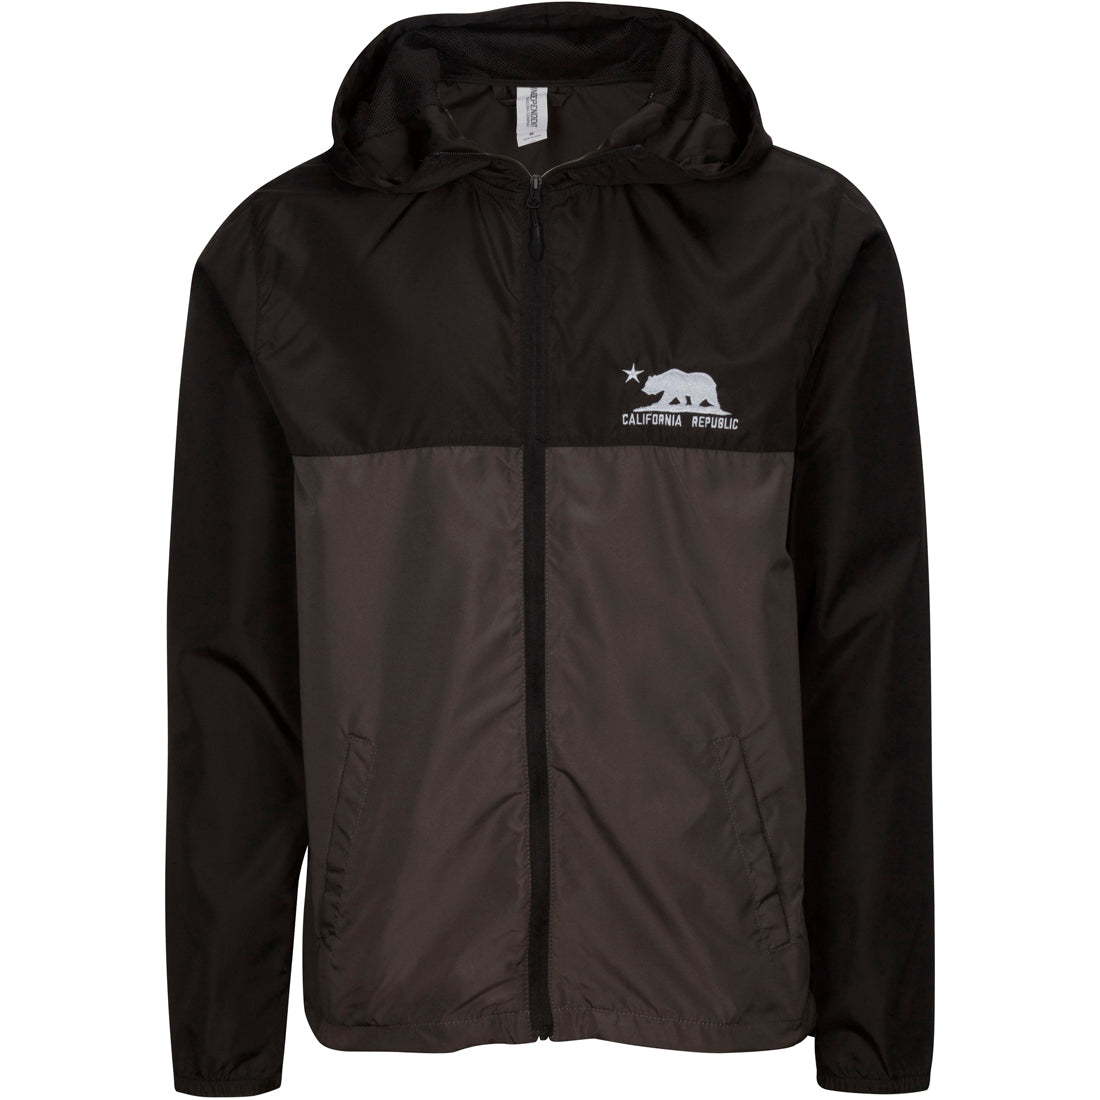 California Republic Embroidered Light Weight Windbreaker Zip Jacket - Black/Graphite